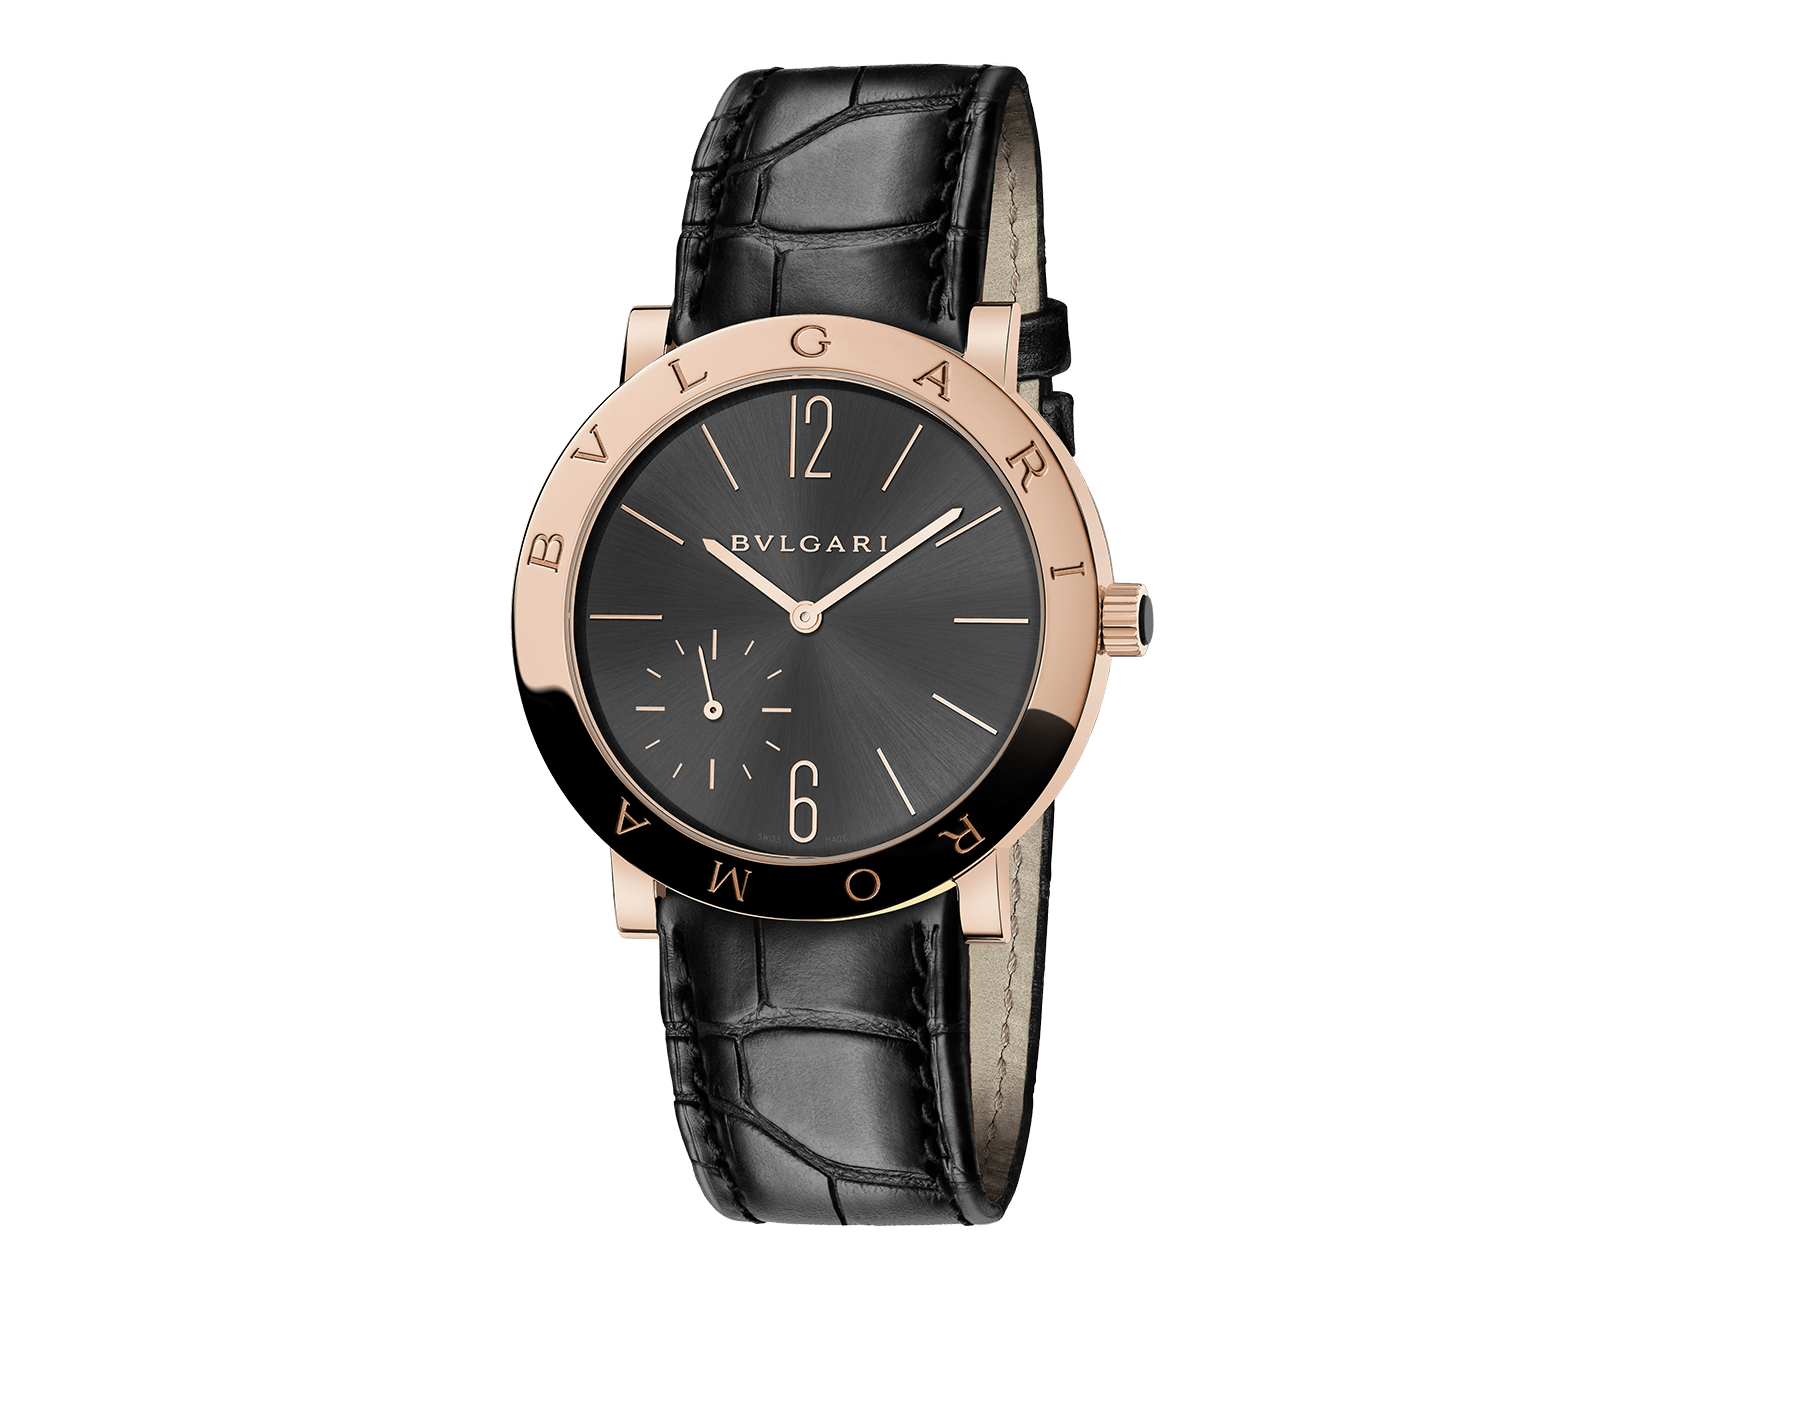 BVLGARI ROMA watch with mechanical manufacture movement, manual winding, small seconds, 18 kt rose gold case, anthracite dial and black alligator strap 102505 image 1